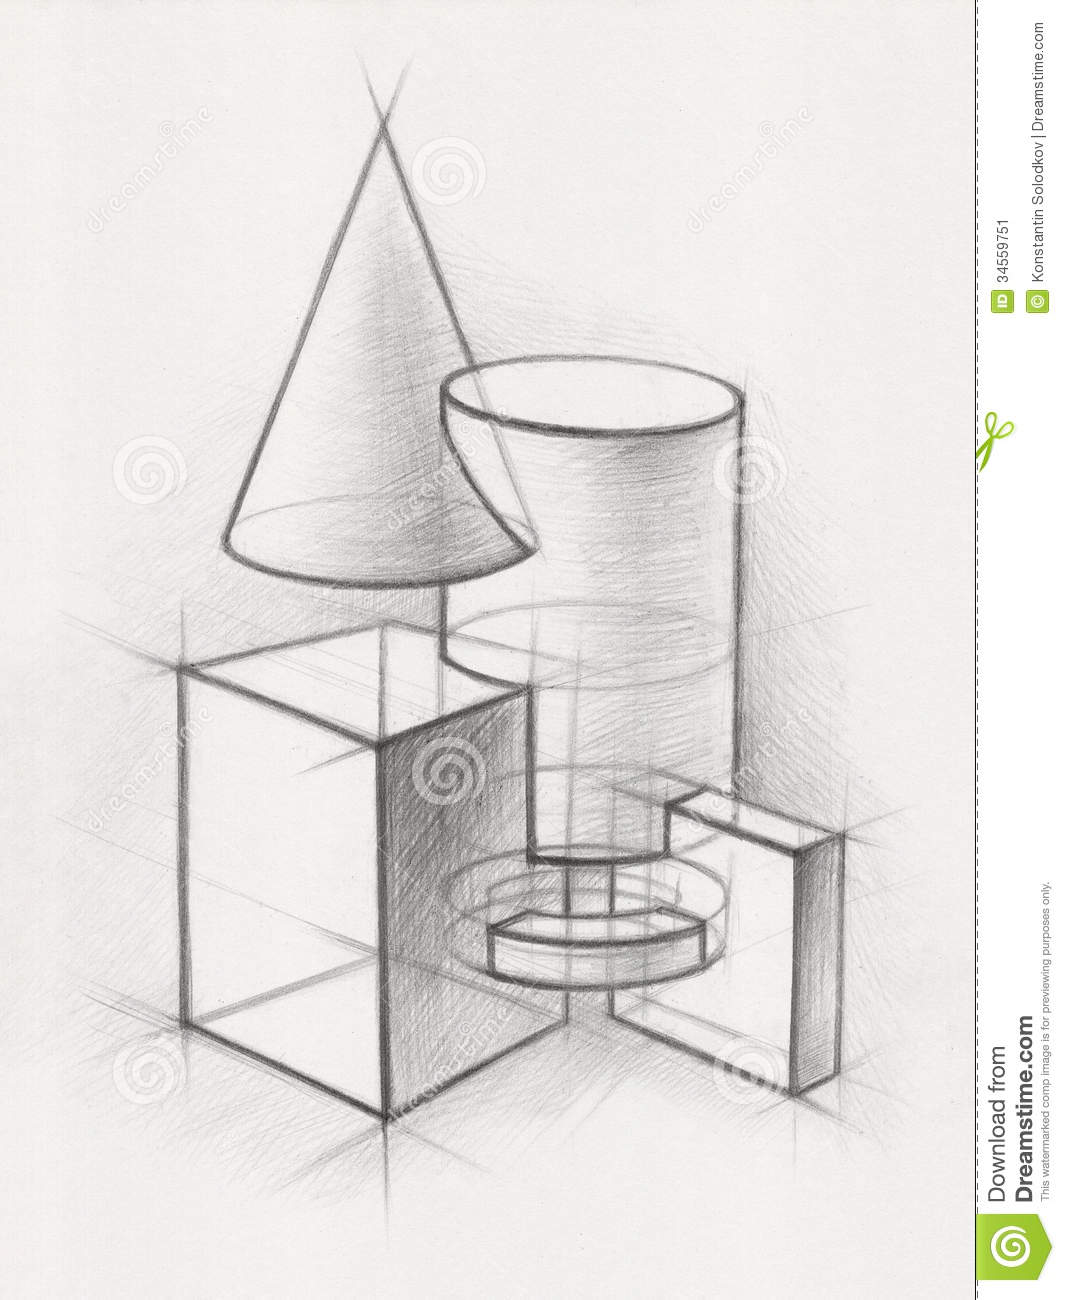 3d Shape Line Drawings : Solid geometric shapes stock illustration of